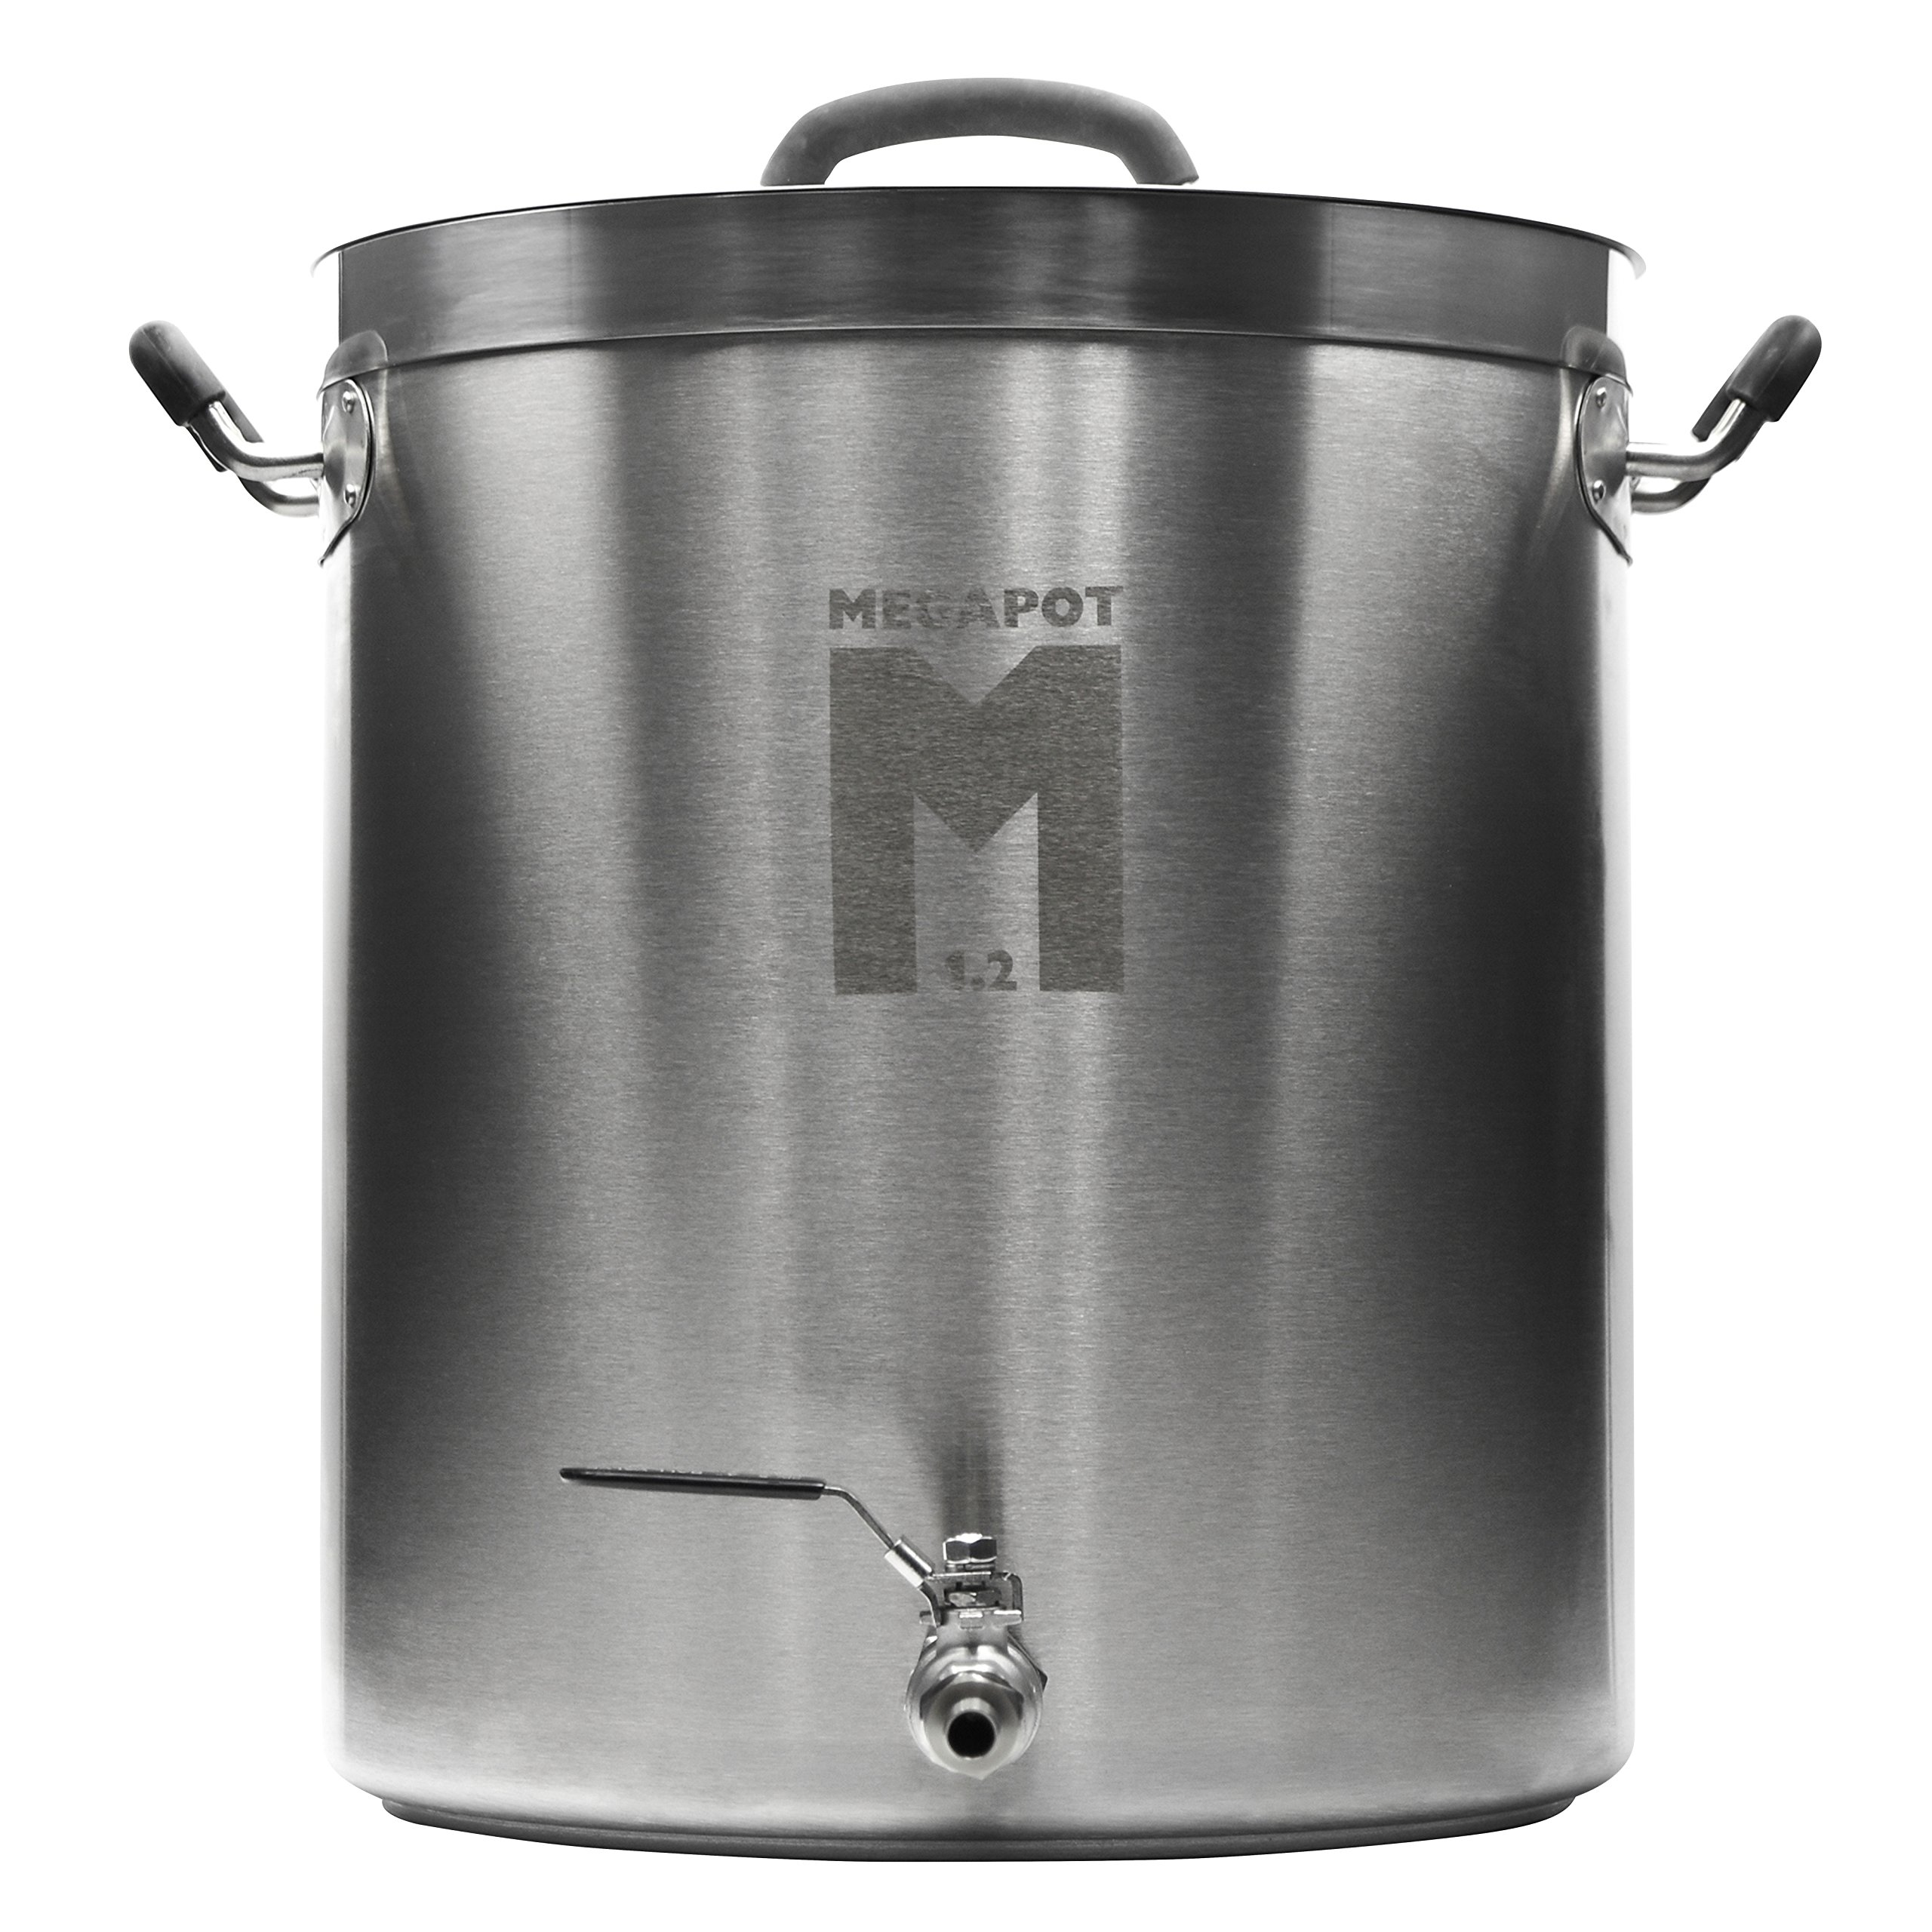 Northern Brewer - Megapot 1.2 Homebrew Stainless Steel Brew Kettle Stock Pot For Beer Brewing (Kettle with a Valve, 10 Gallon/40 Quarts)